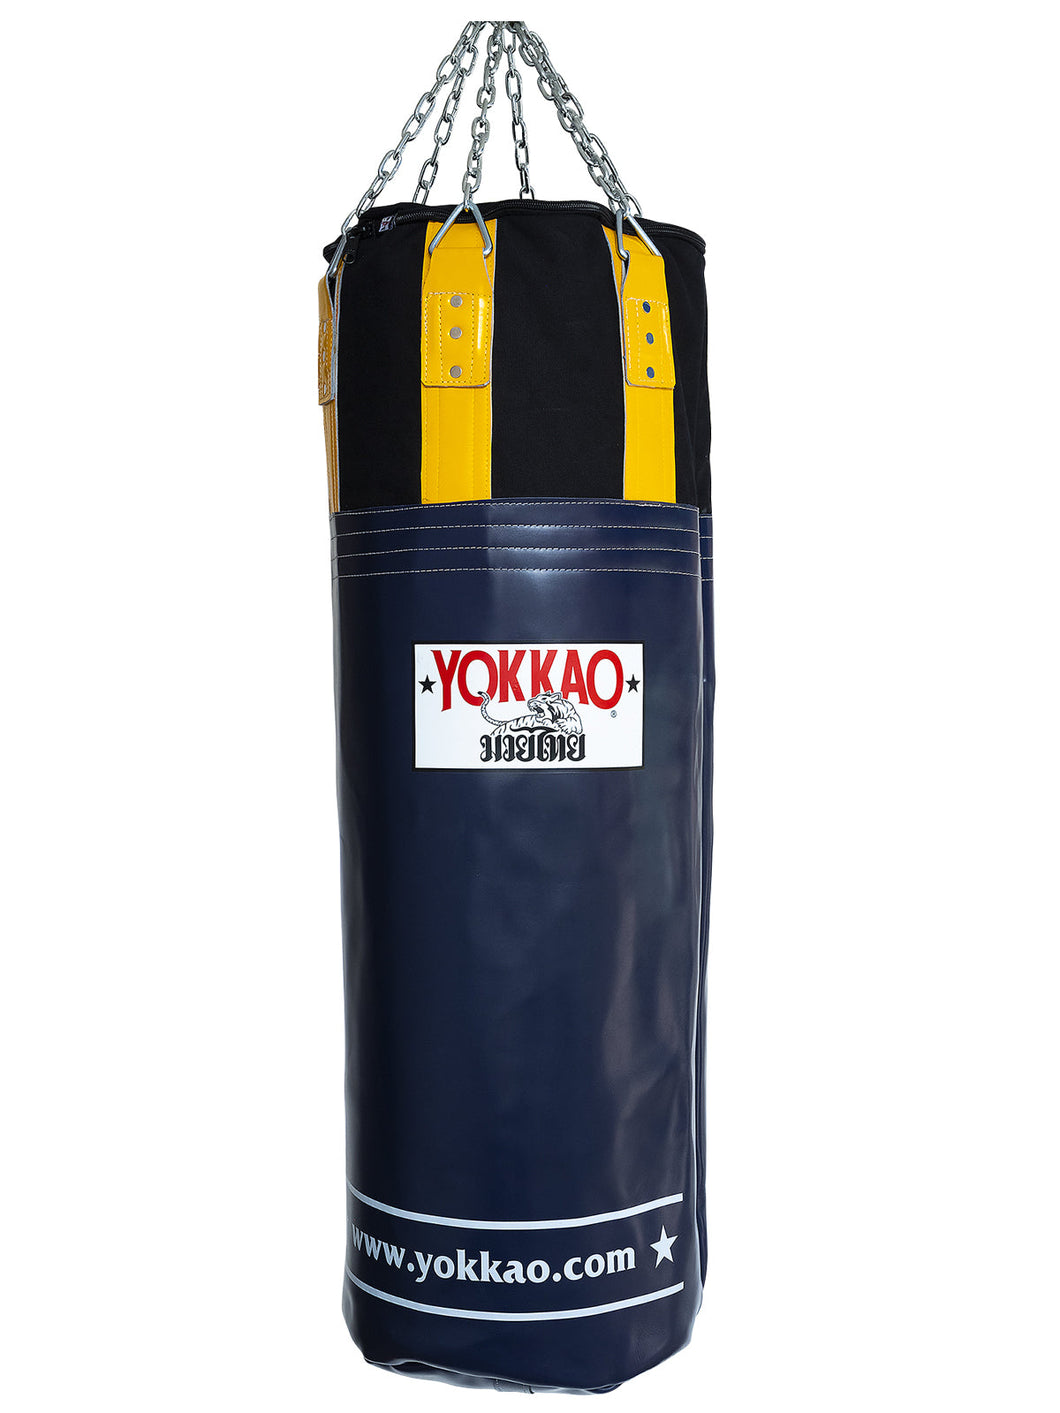 Evening Blue/Gold Fusion Heavy Bag - YOKKAO